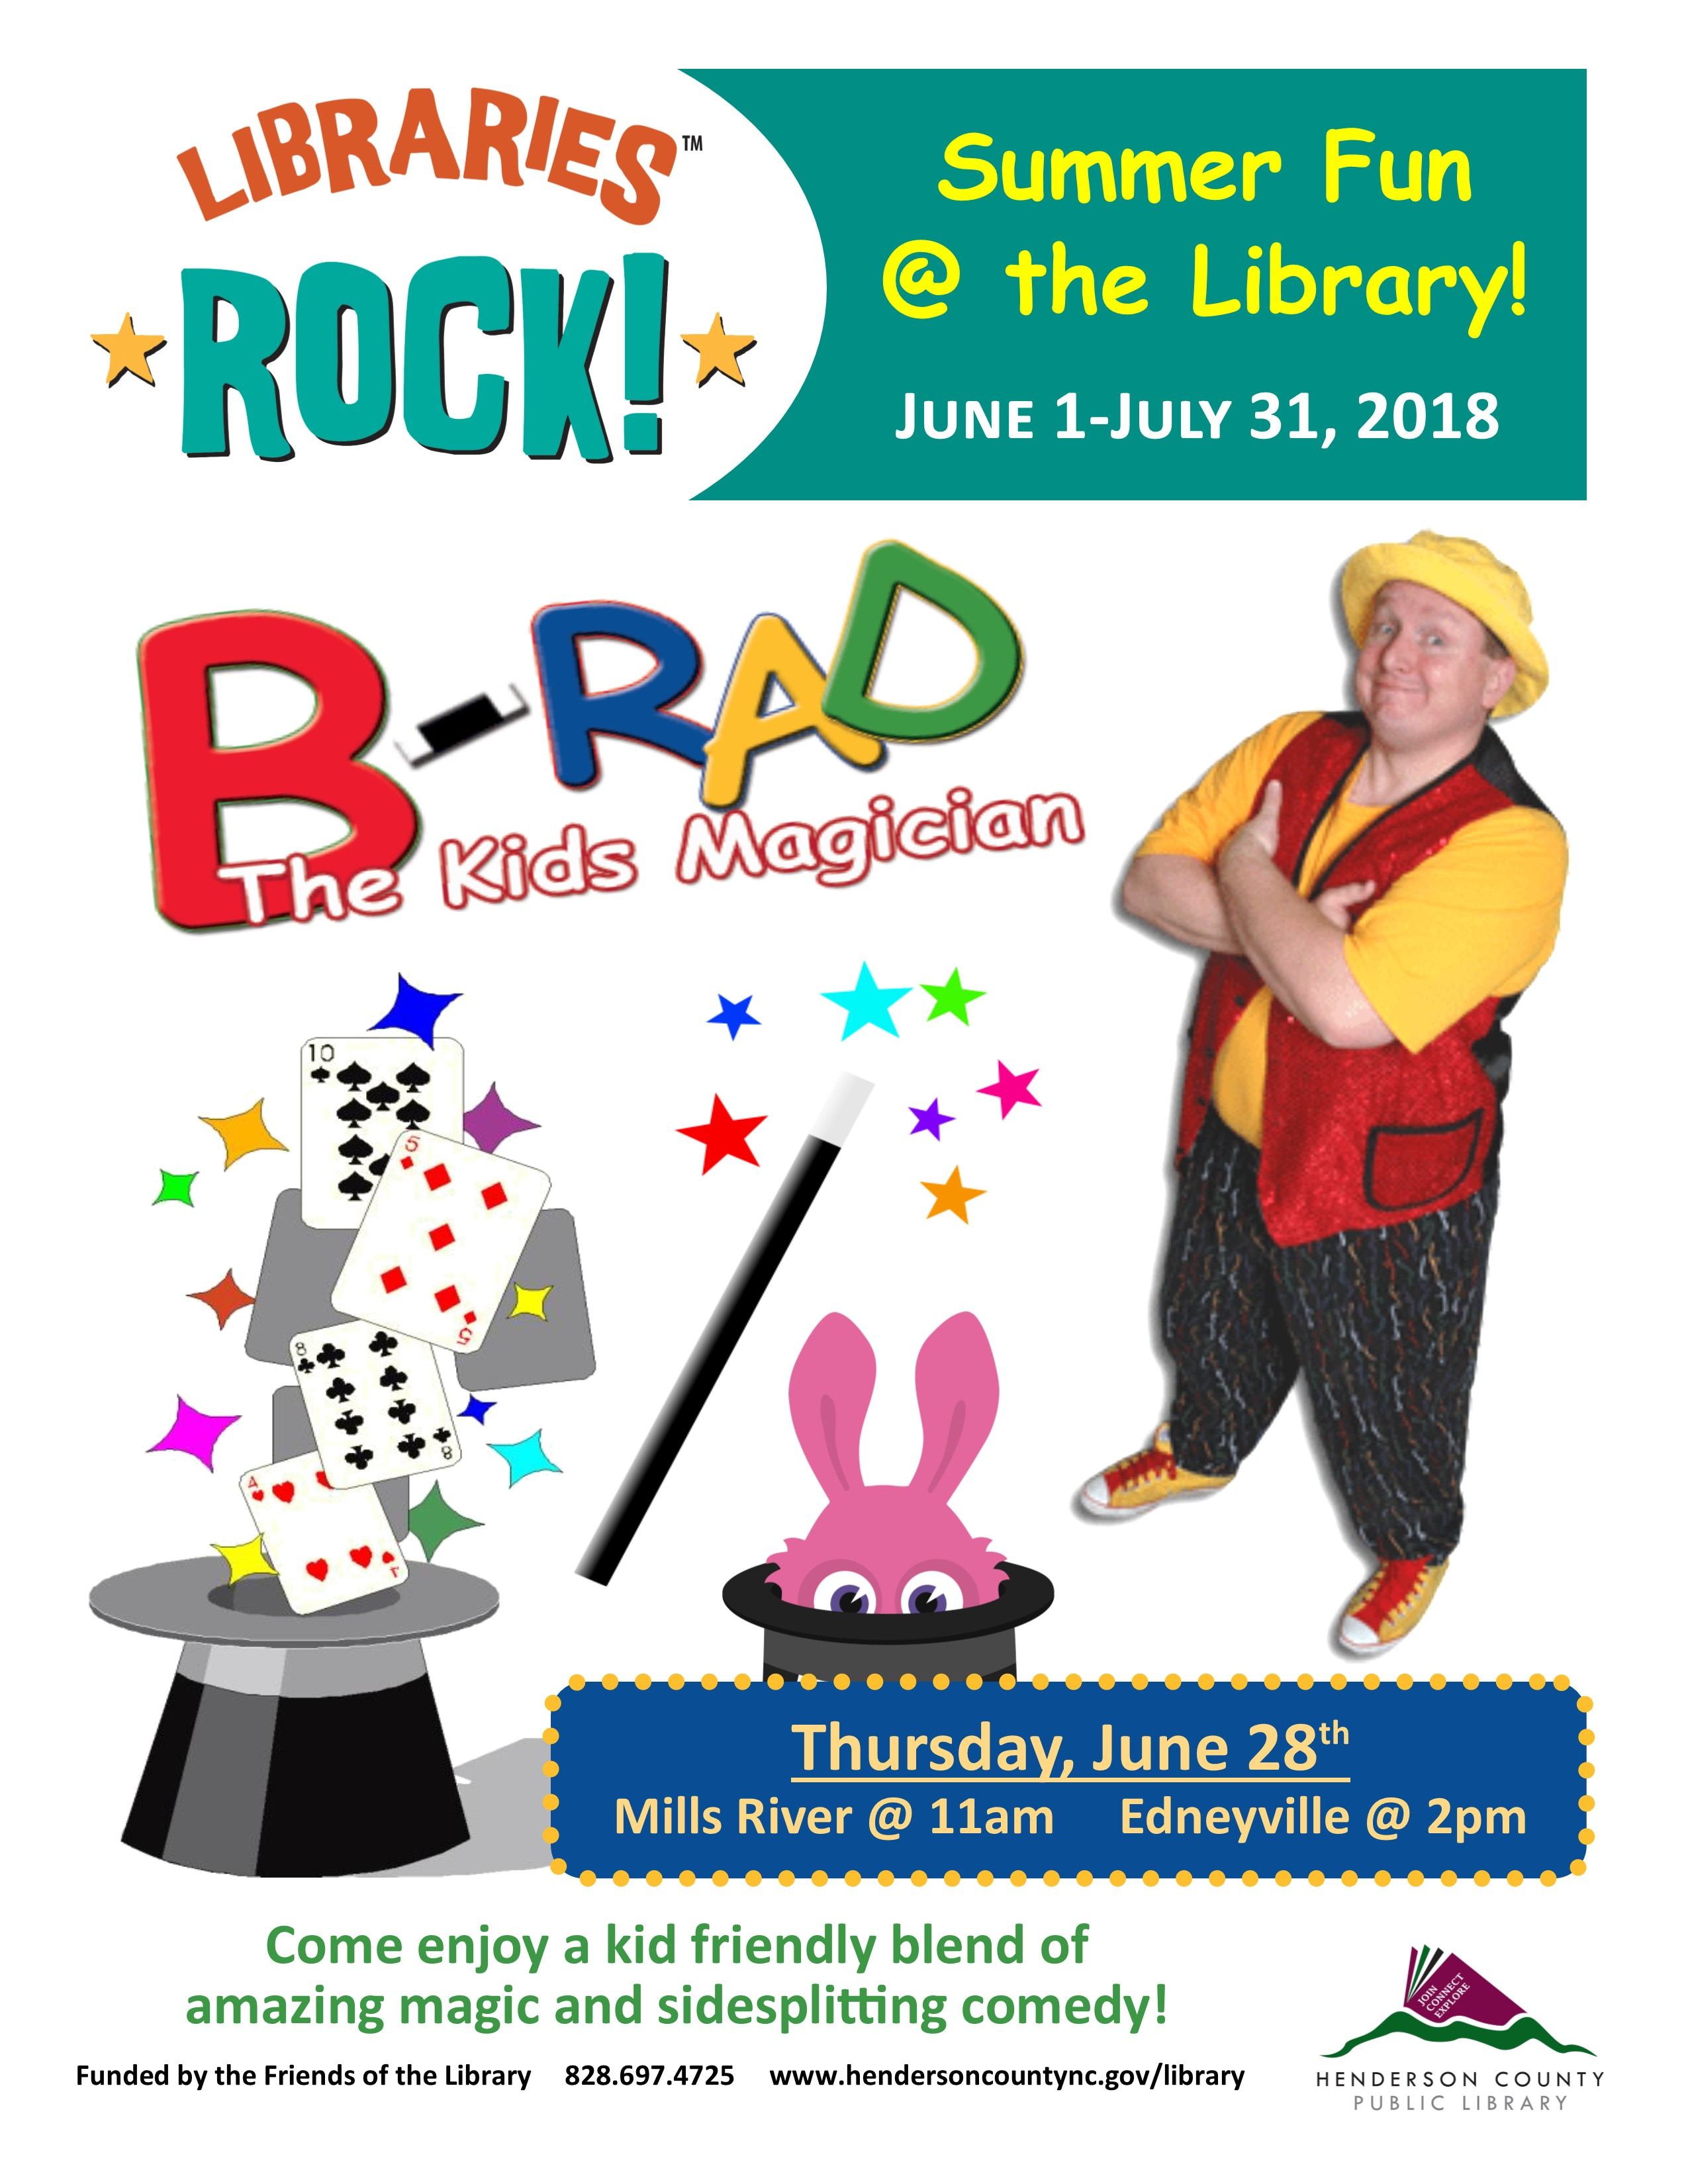 Libraries Rock with B-Rad the Kids Magician